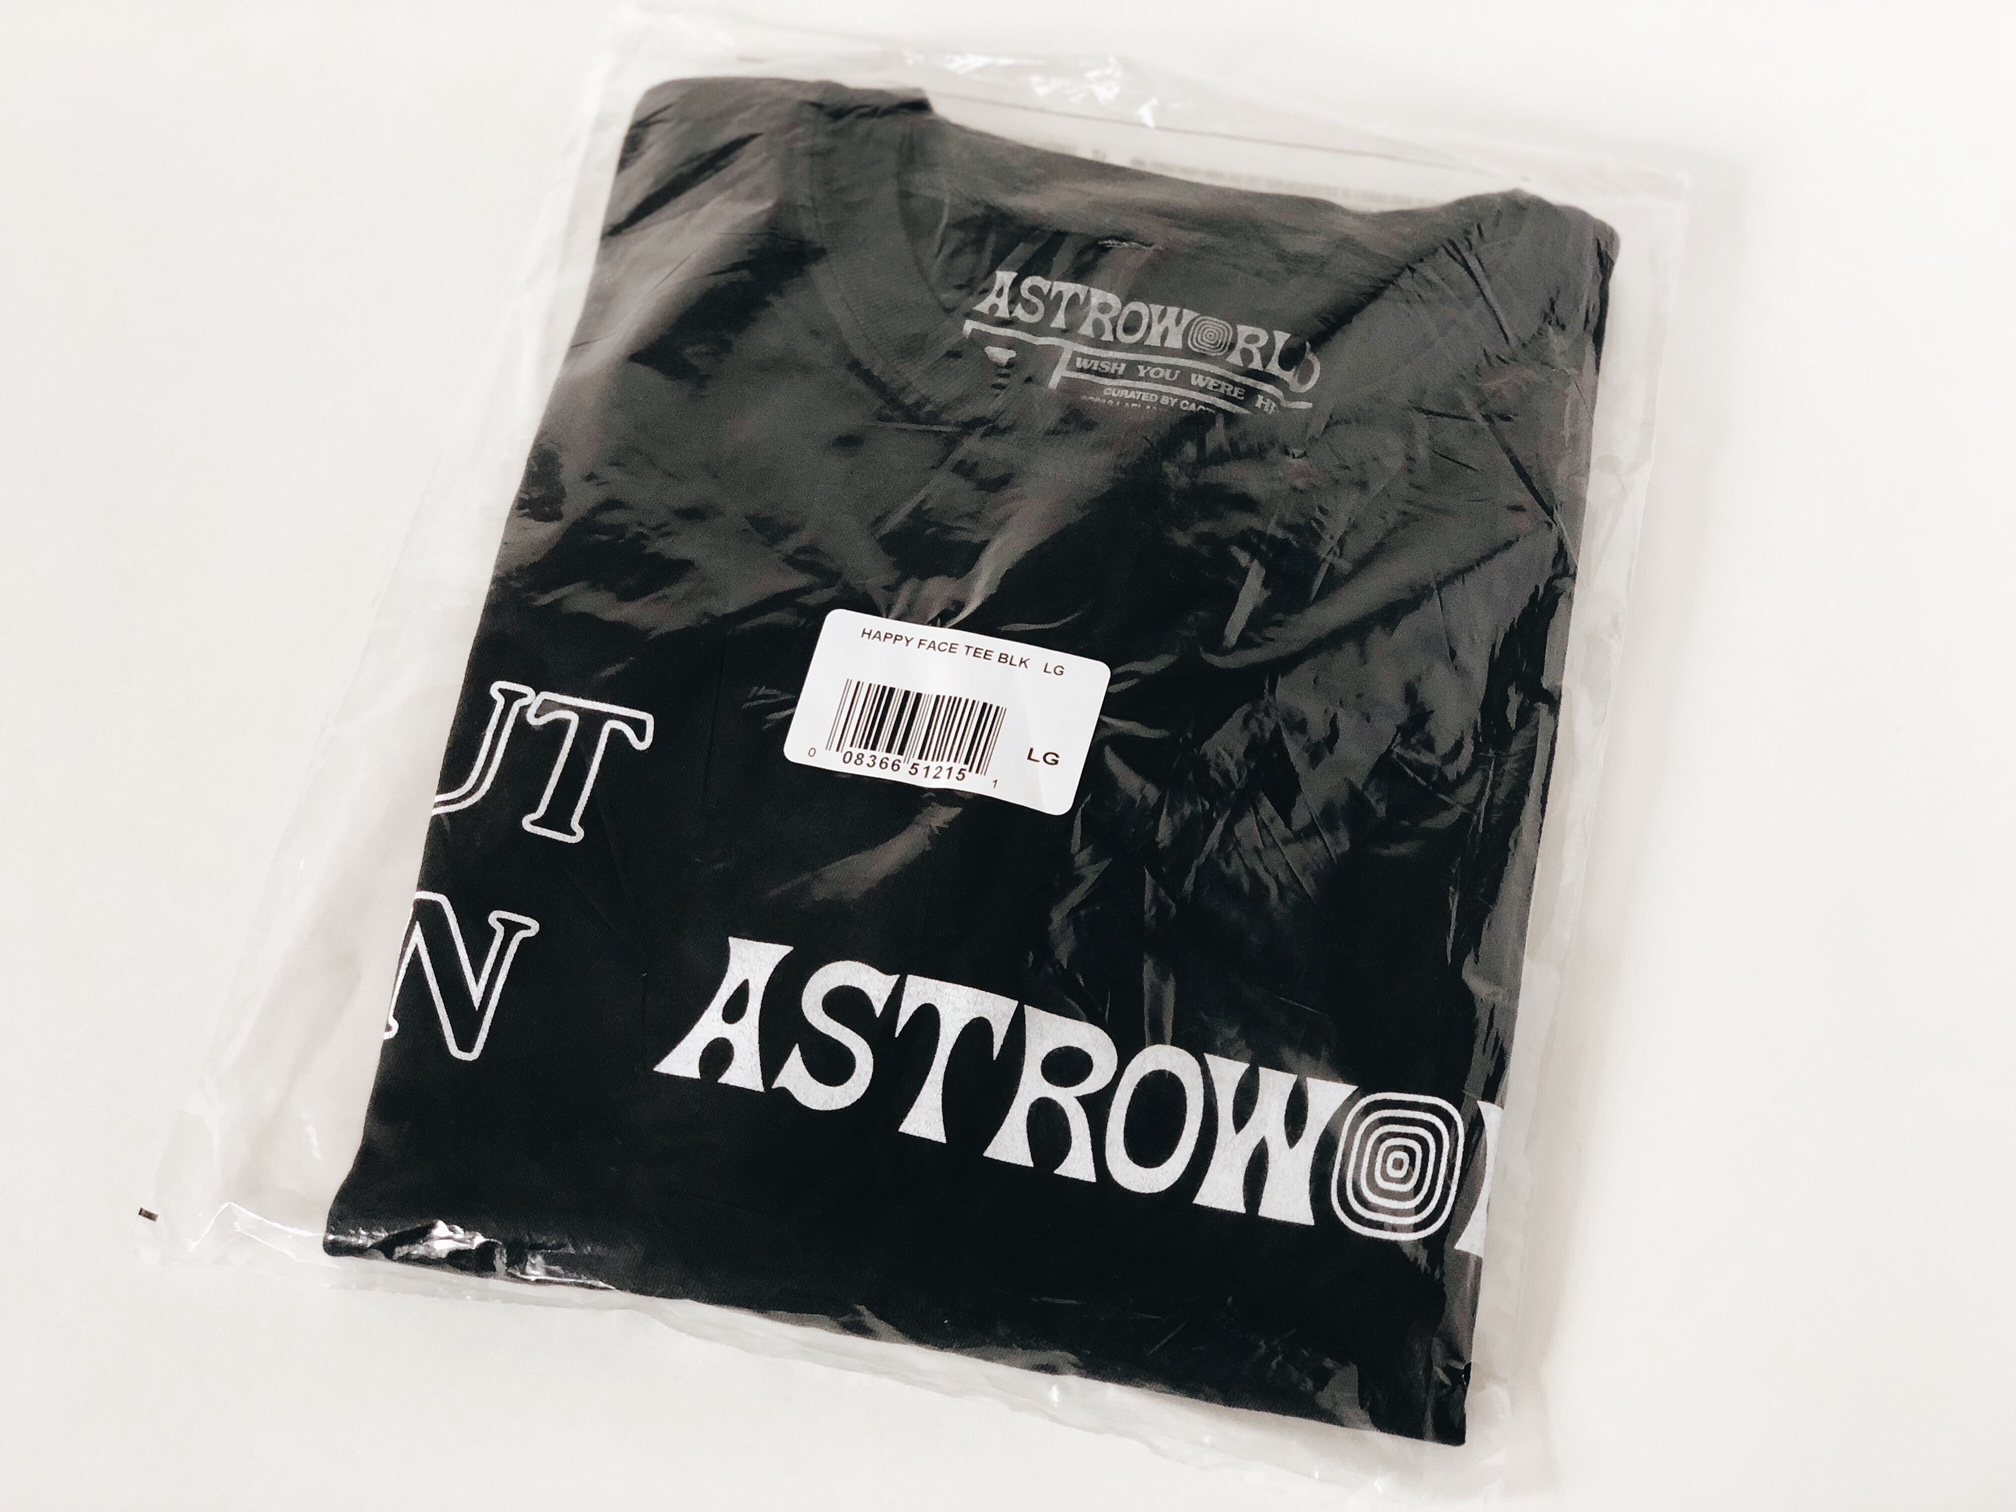 26b331c1e5e5 Travis Scott Travis Scott Astroworld [authentic Merch] Happy Face ...